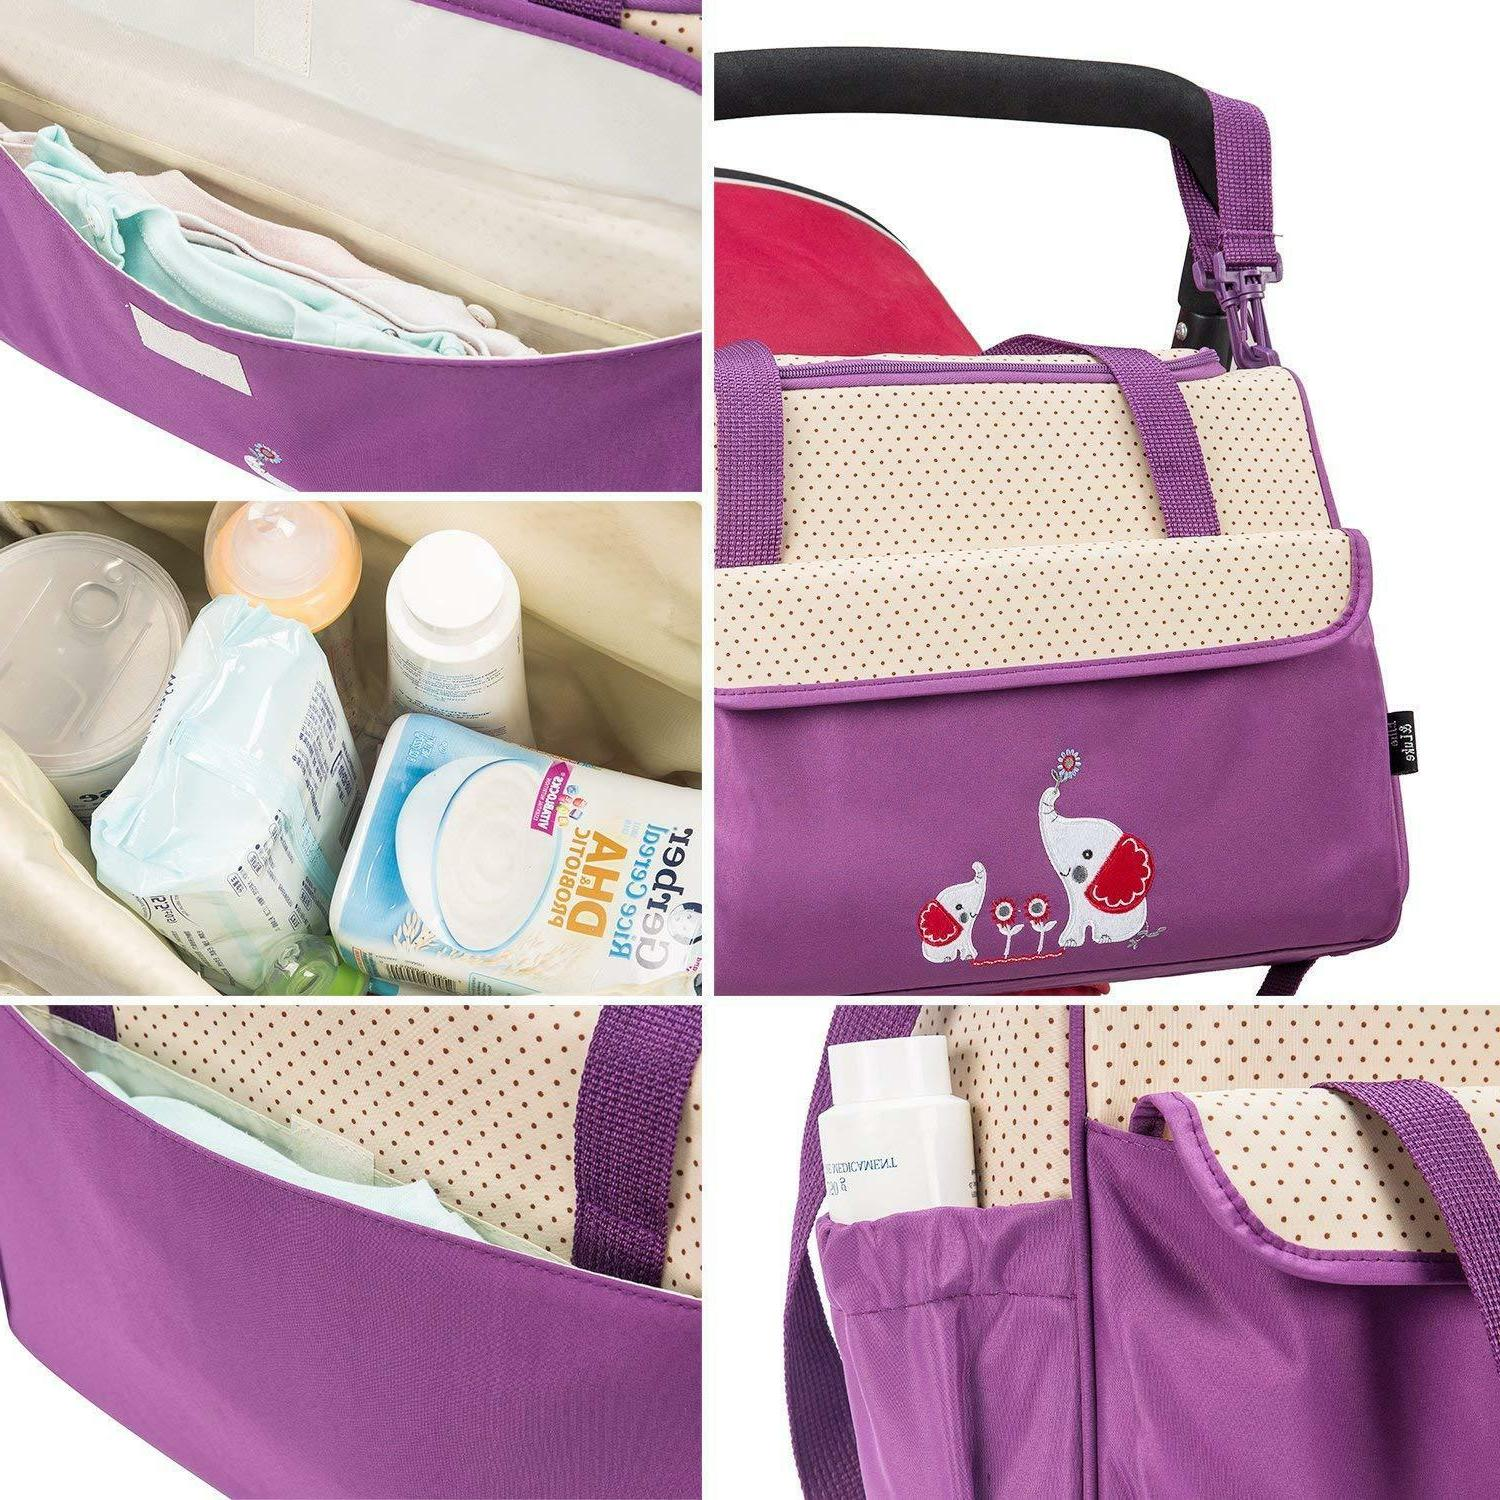 SOHO Collections Diaper Bag